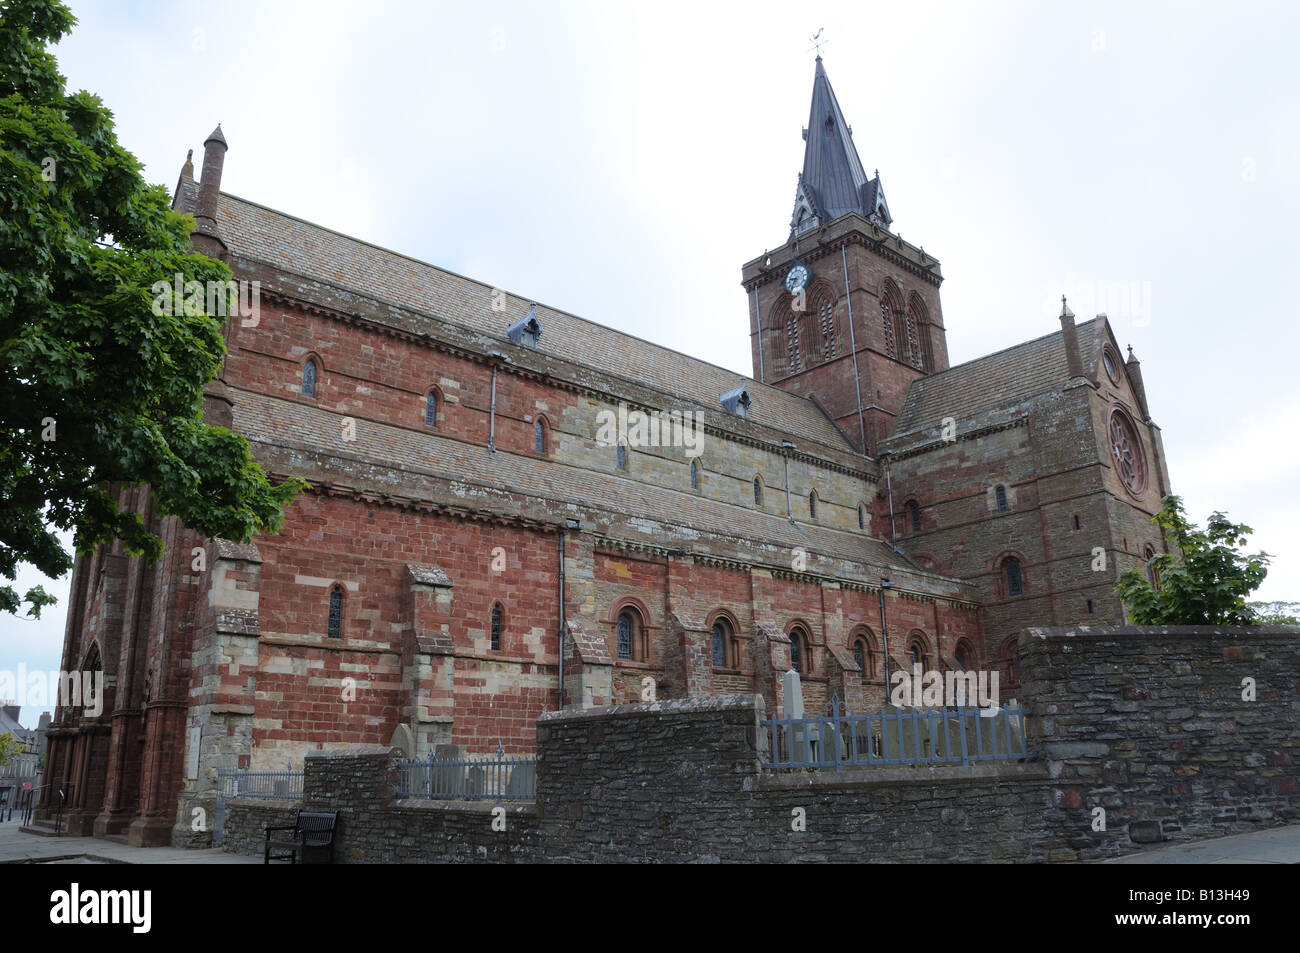 St. Magnus Cathedral in Kirkwall was begun in 1137 by the Norse Earl Rognvald. - Stock Image